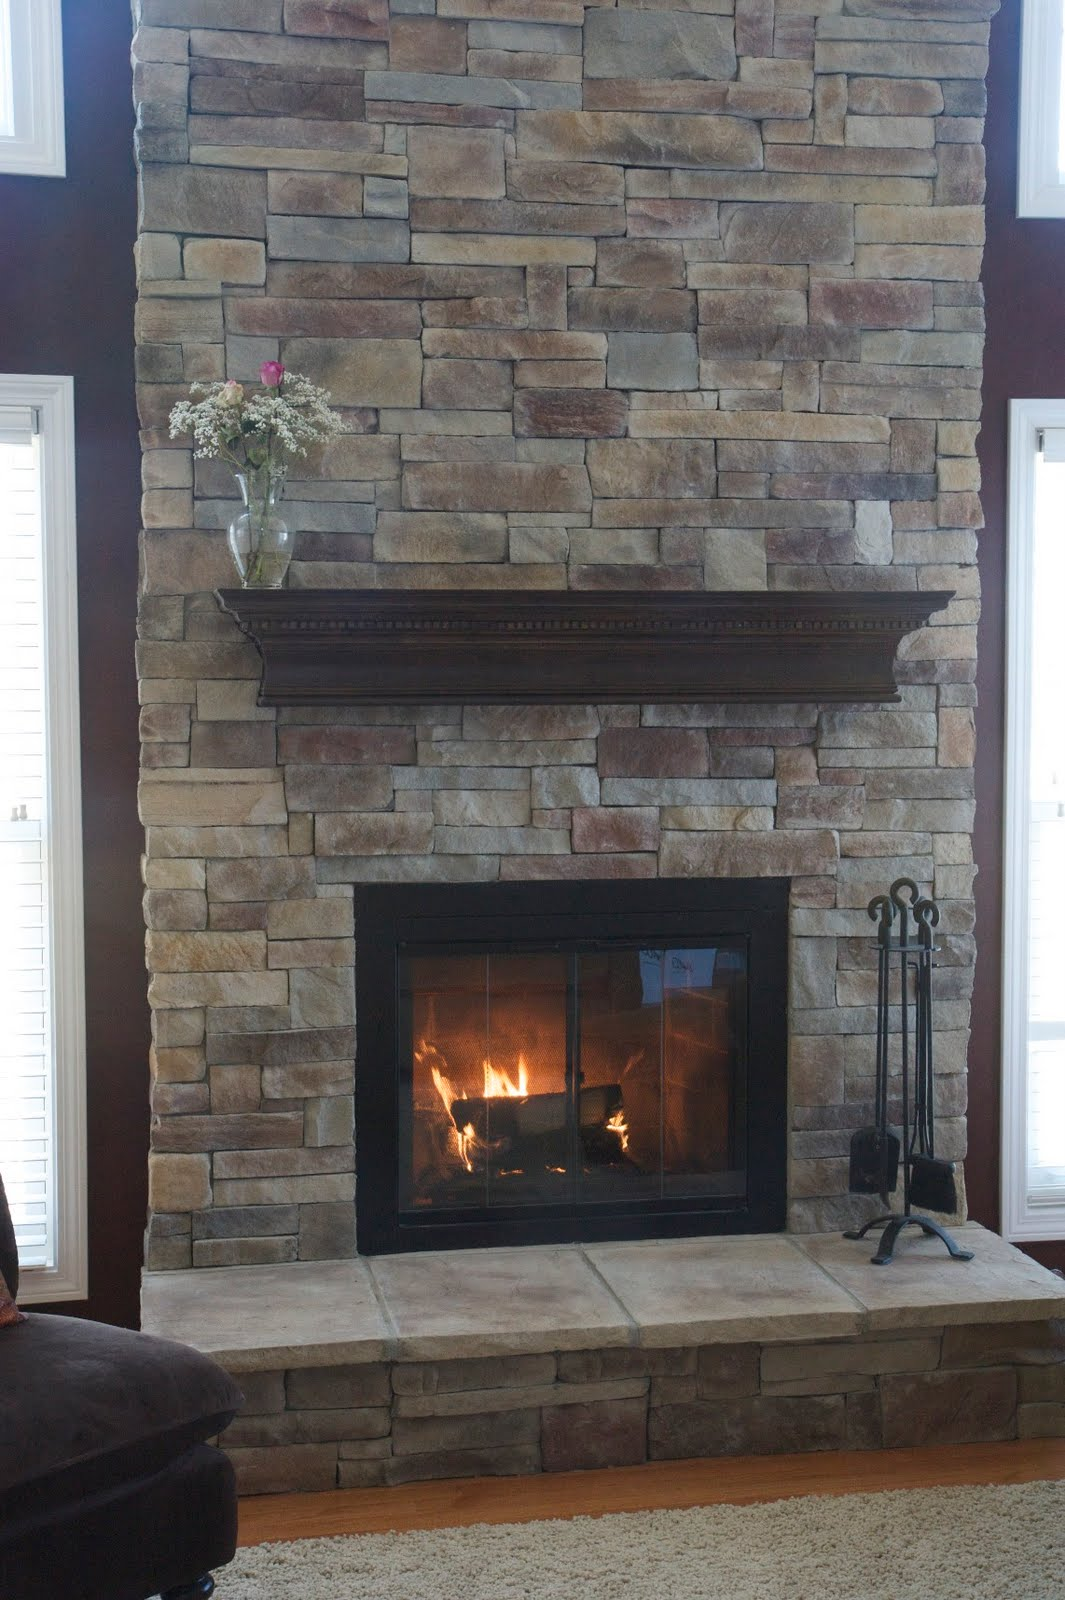 north star stone stone fireplaces stone exteriors march 2010. Black Bedroom Furniture Sets. Home Design Ideas